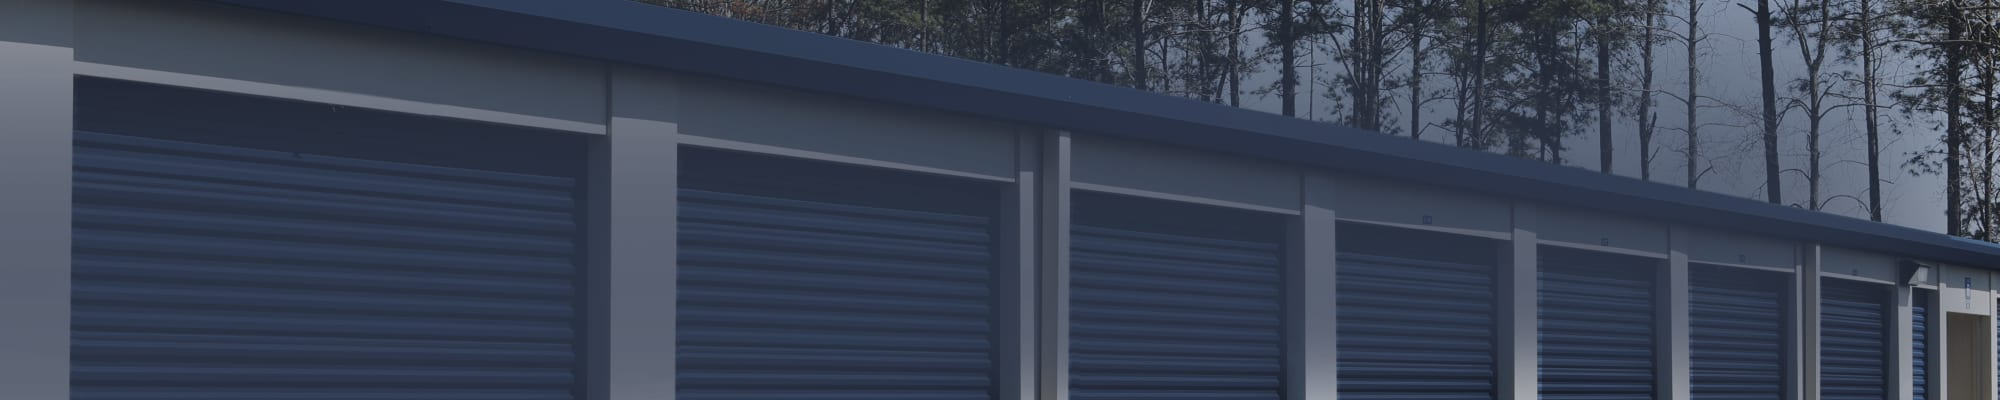 Climate-controlled storage at Midgard Self Storage in Wilmington. North Carolina